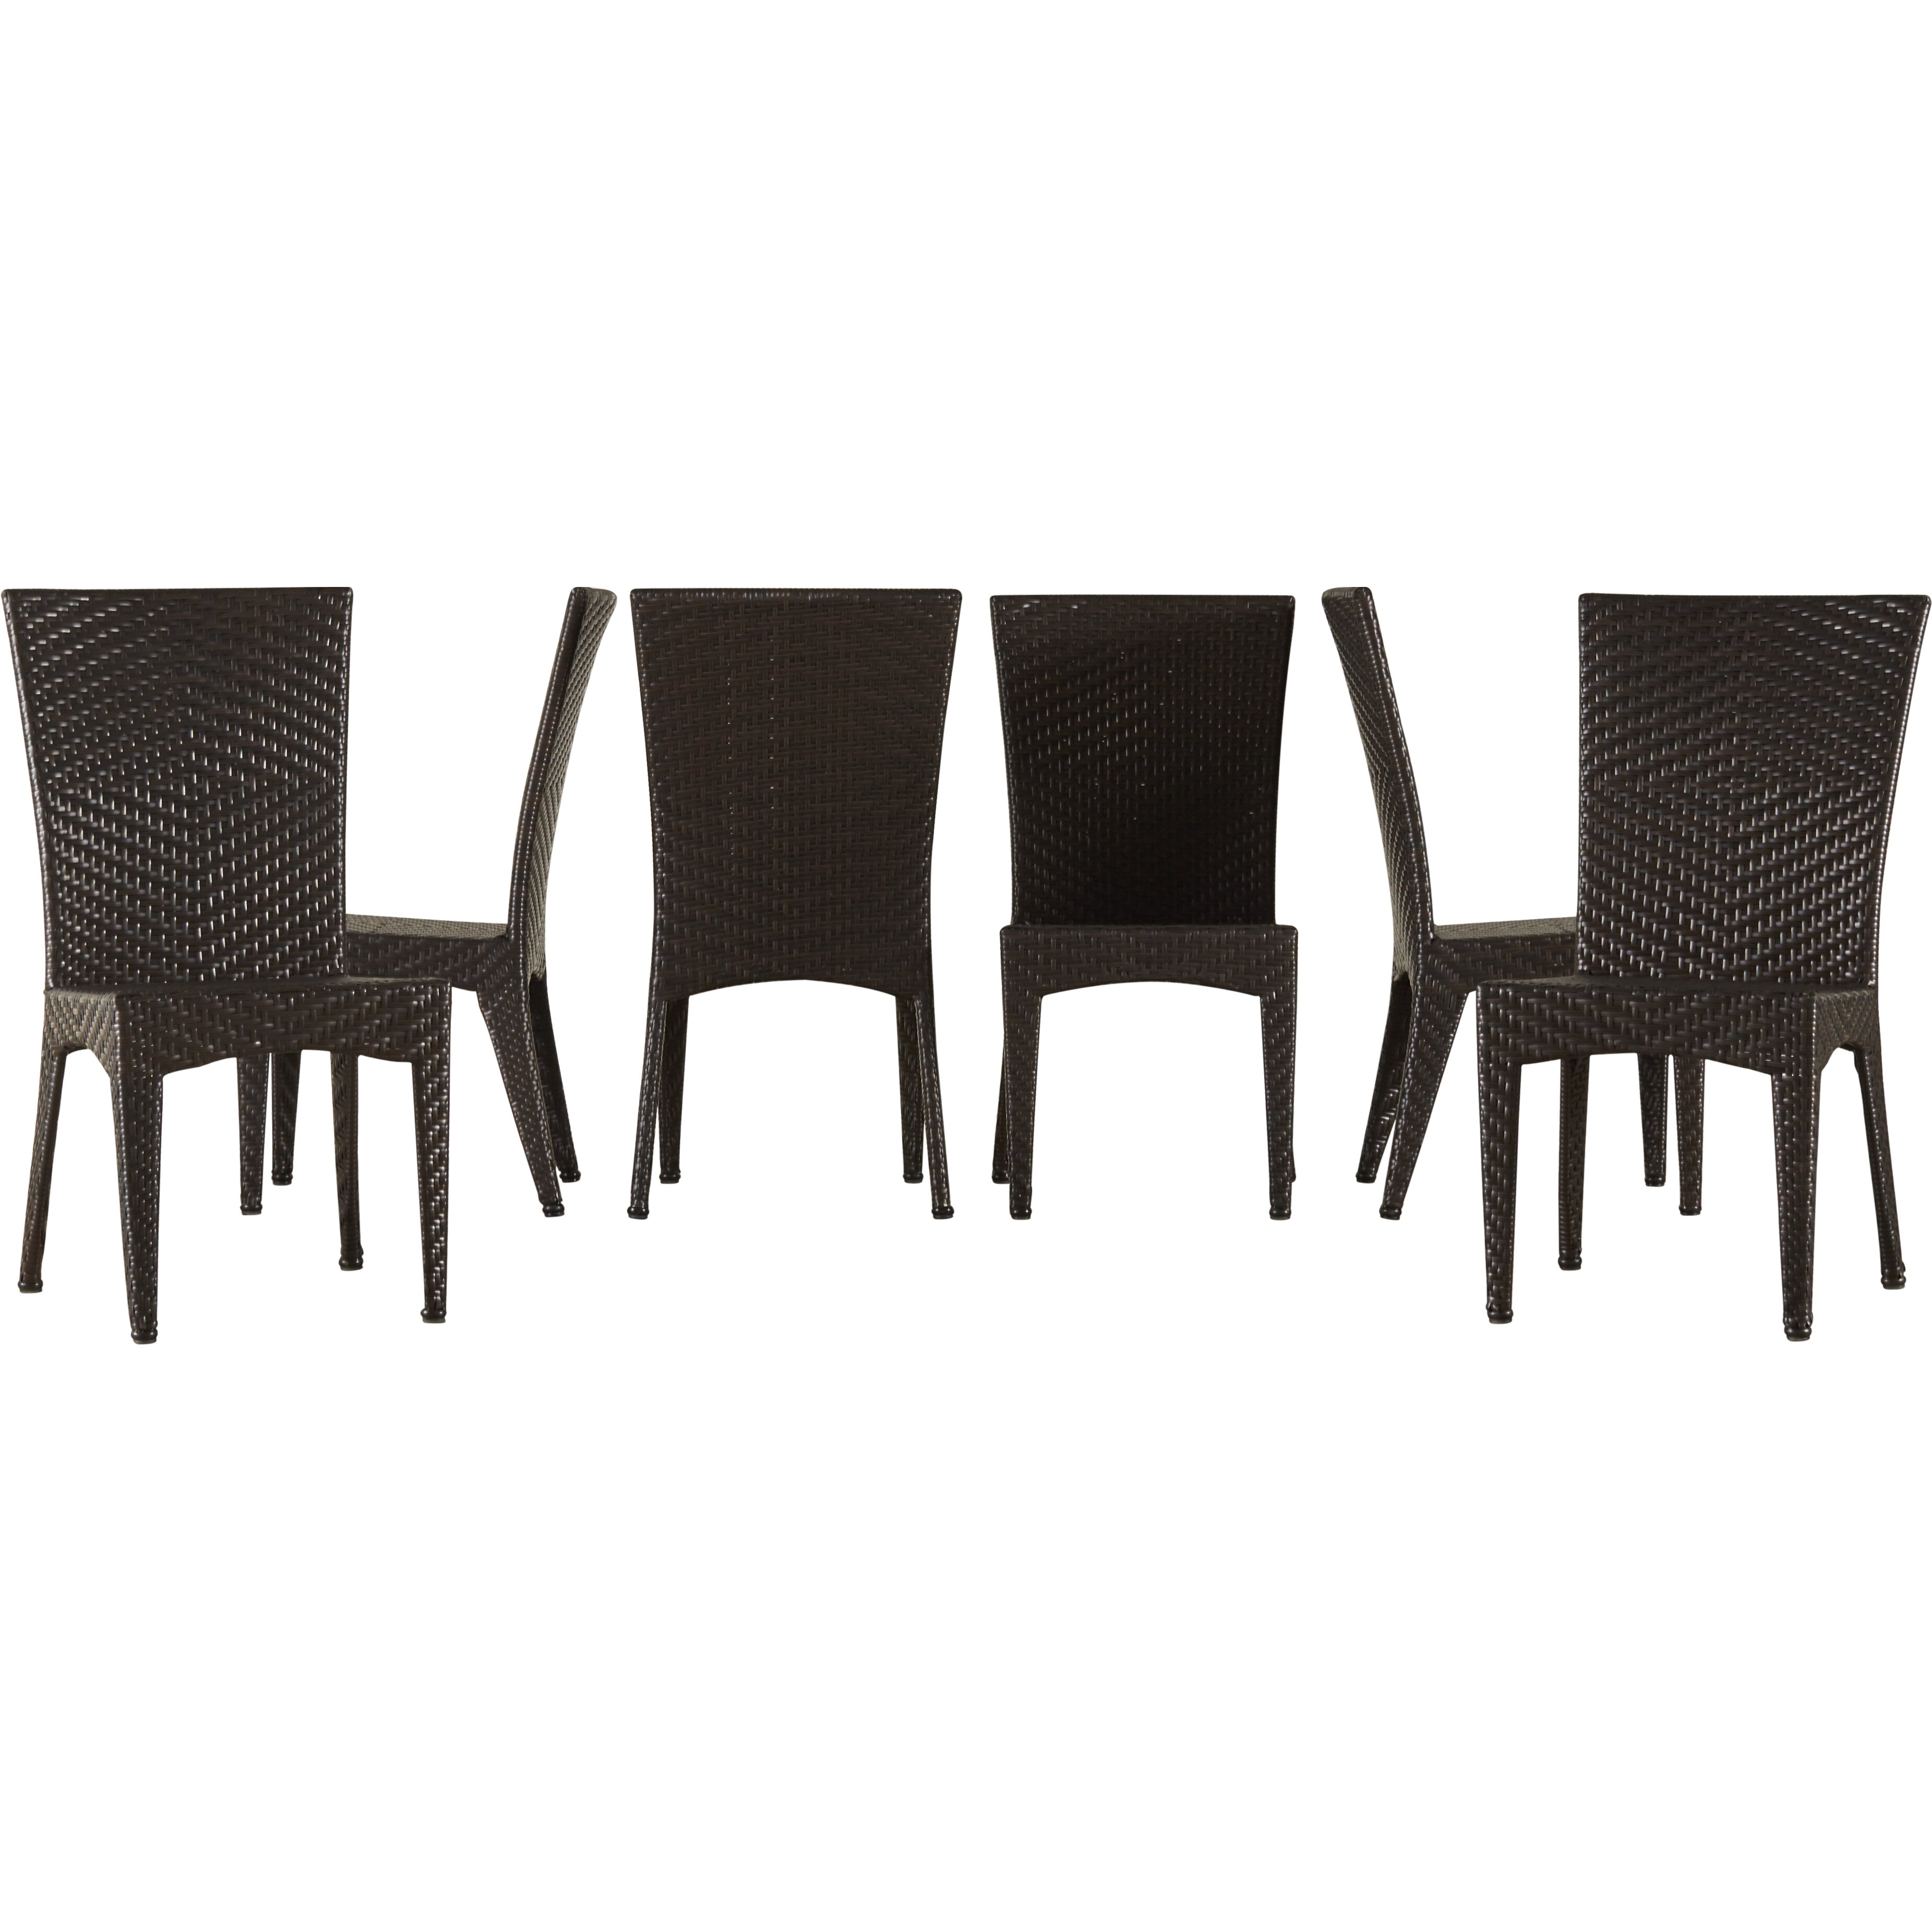 Very Impressive portraiture of  Furniture Six Person Patio Dining Sets Mercury Row SKU: MCRR2893 with #302A25 color and 3703x3703 pixels